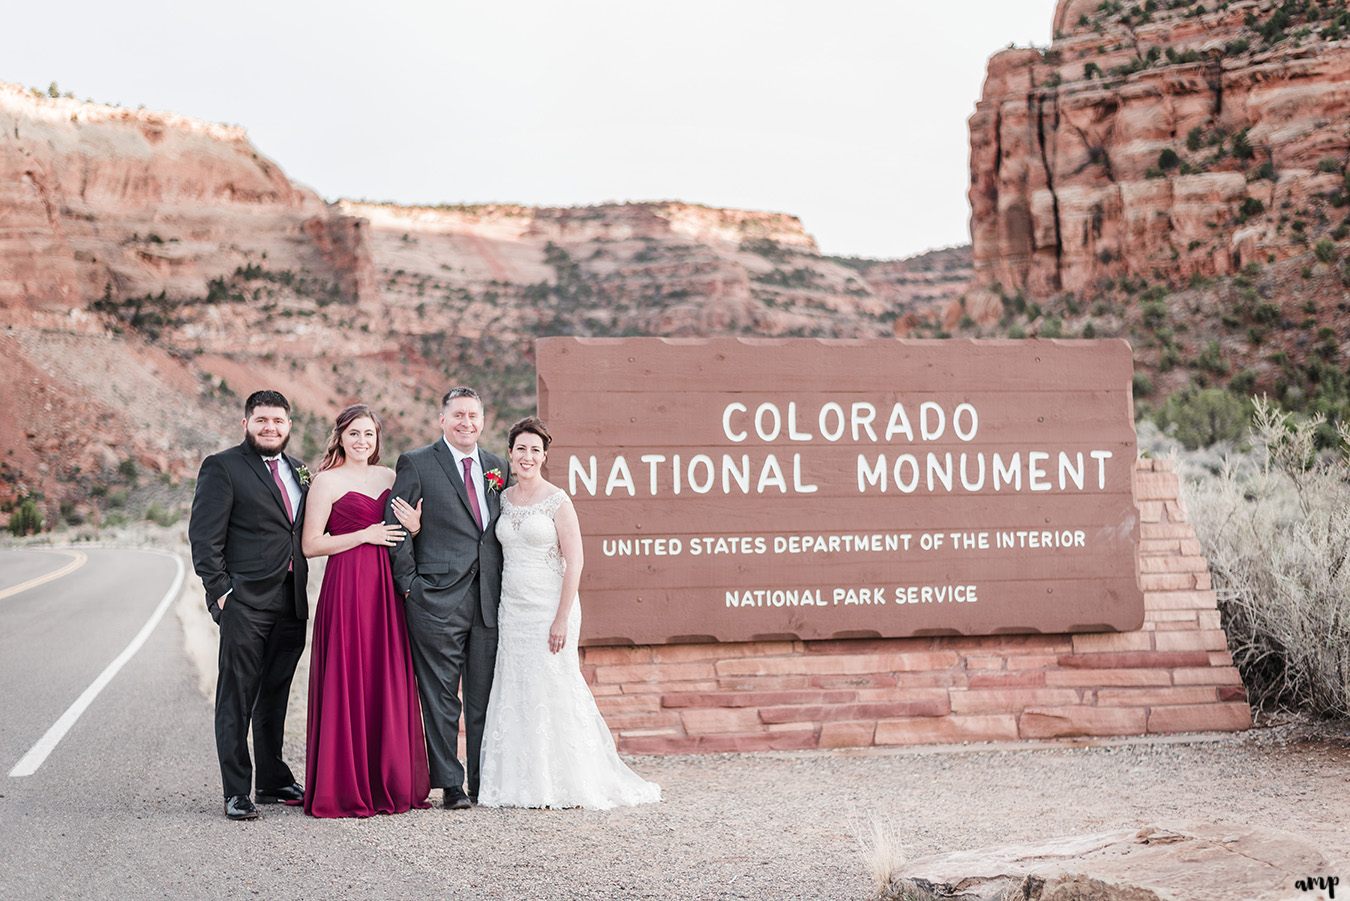 Full elopement group beside Colorado National Monument park sign